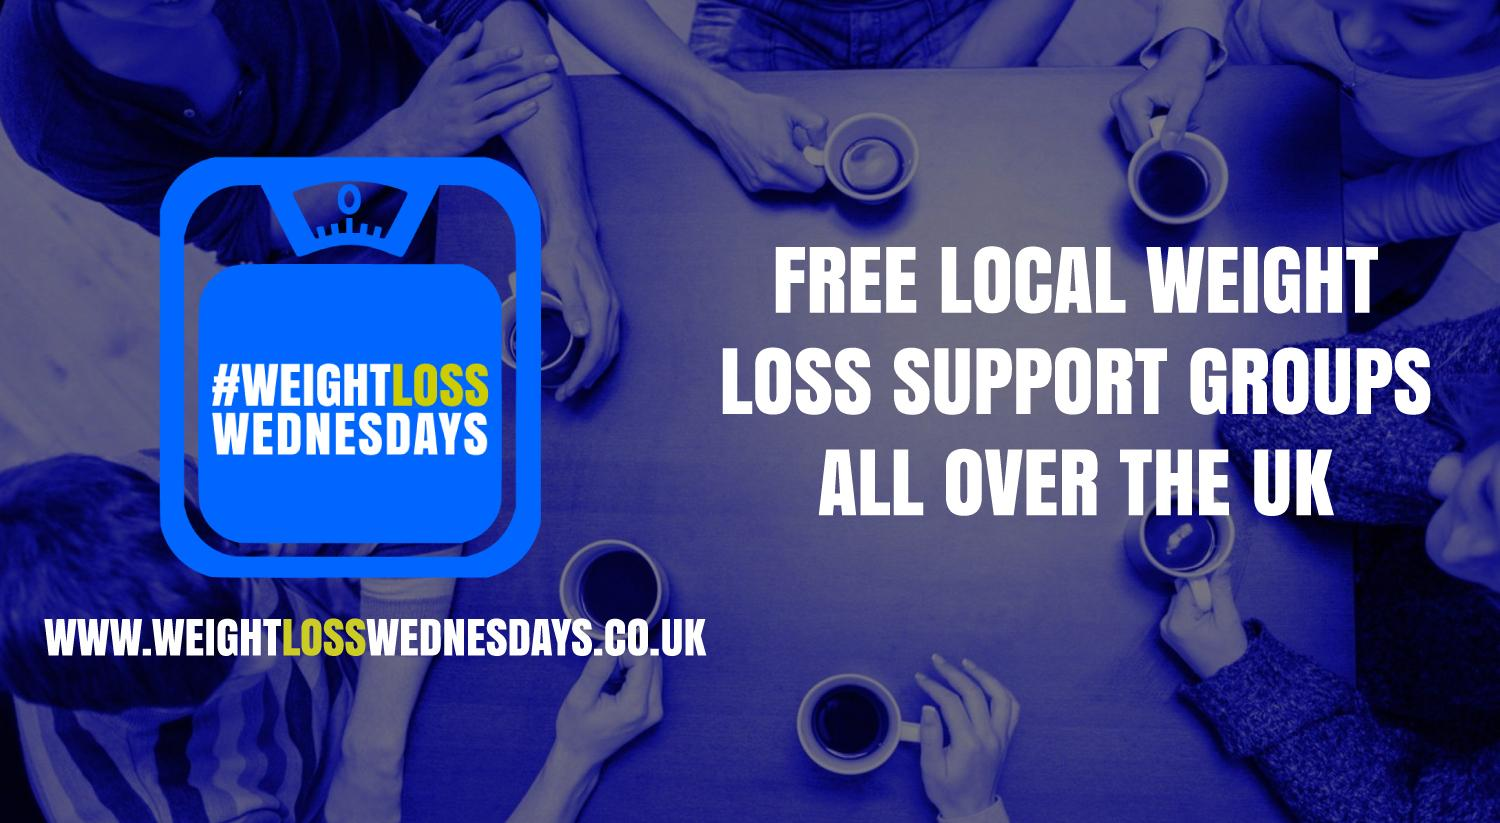 WEIGHT LOSS WEDNESDAYS! Free weekly support group in South Shields